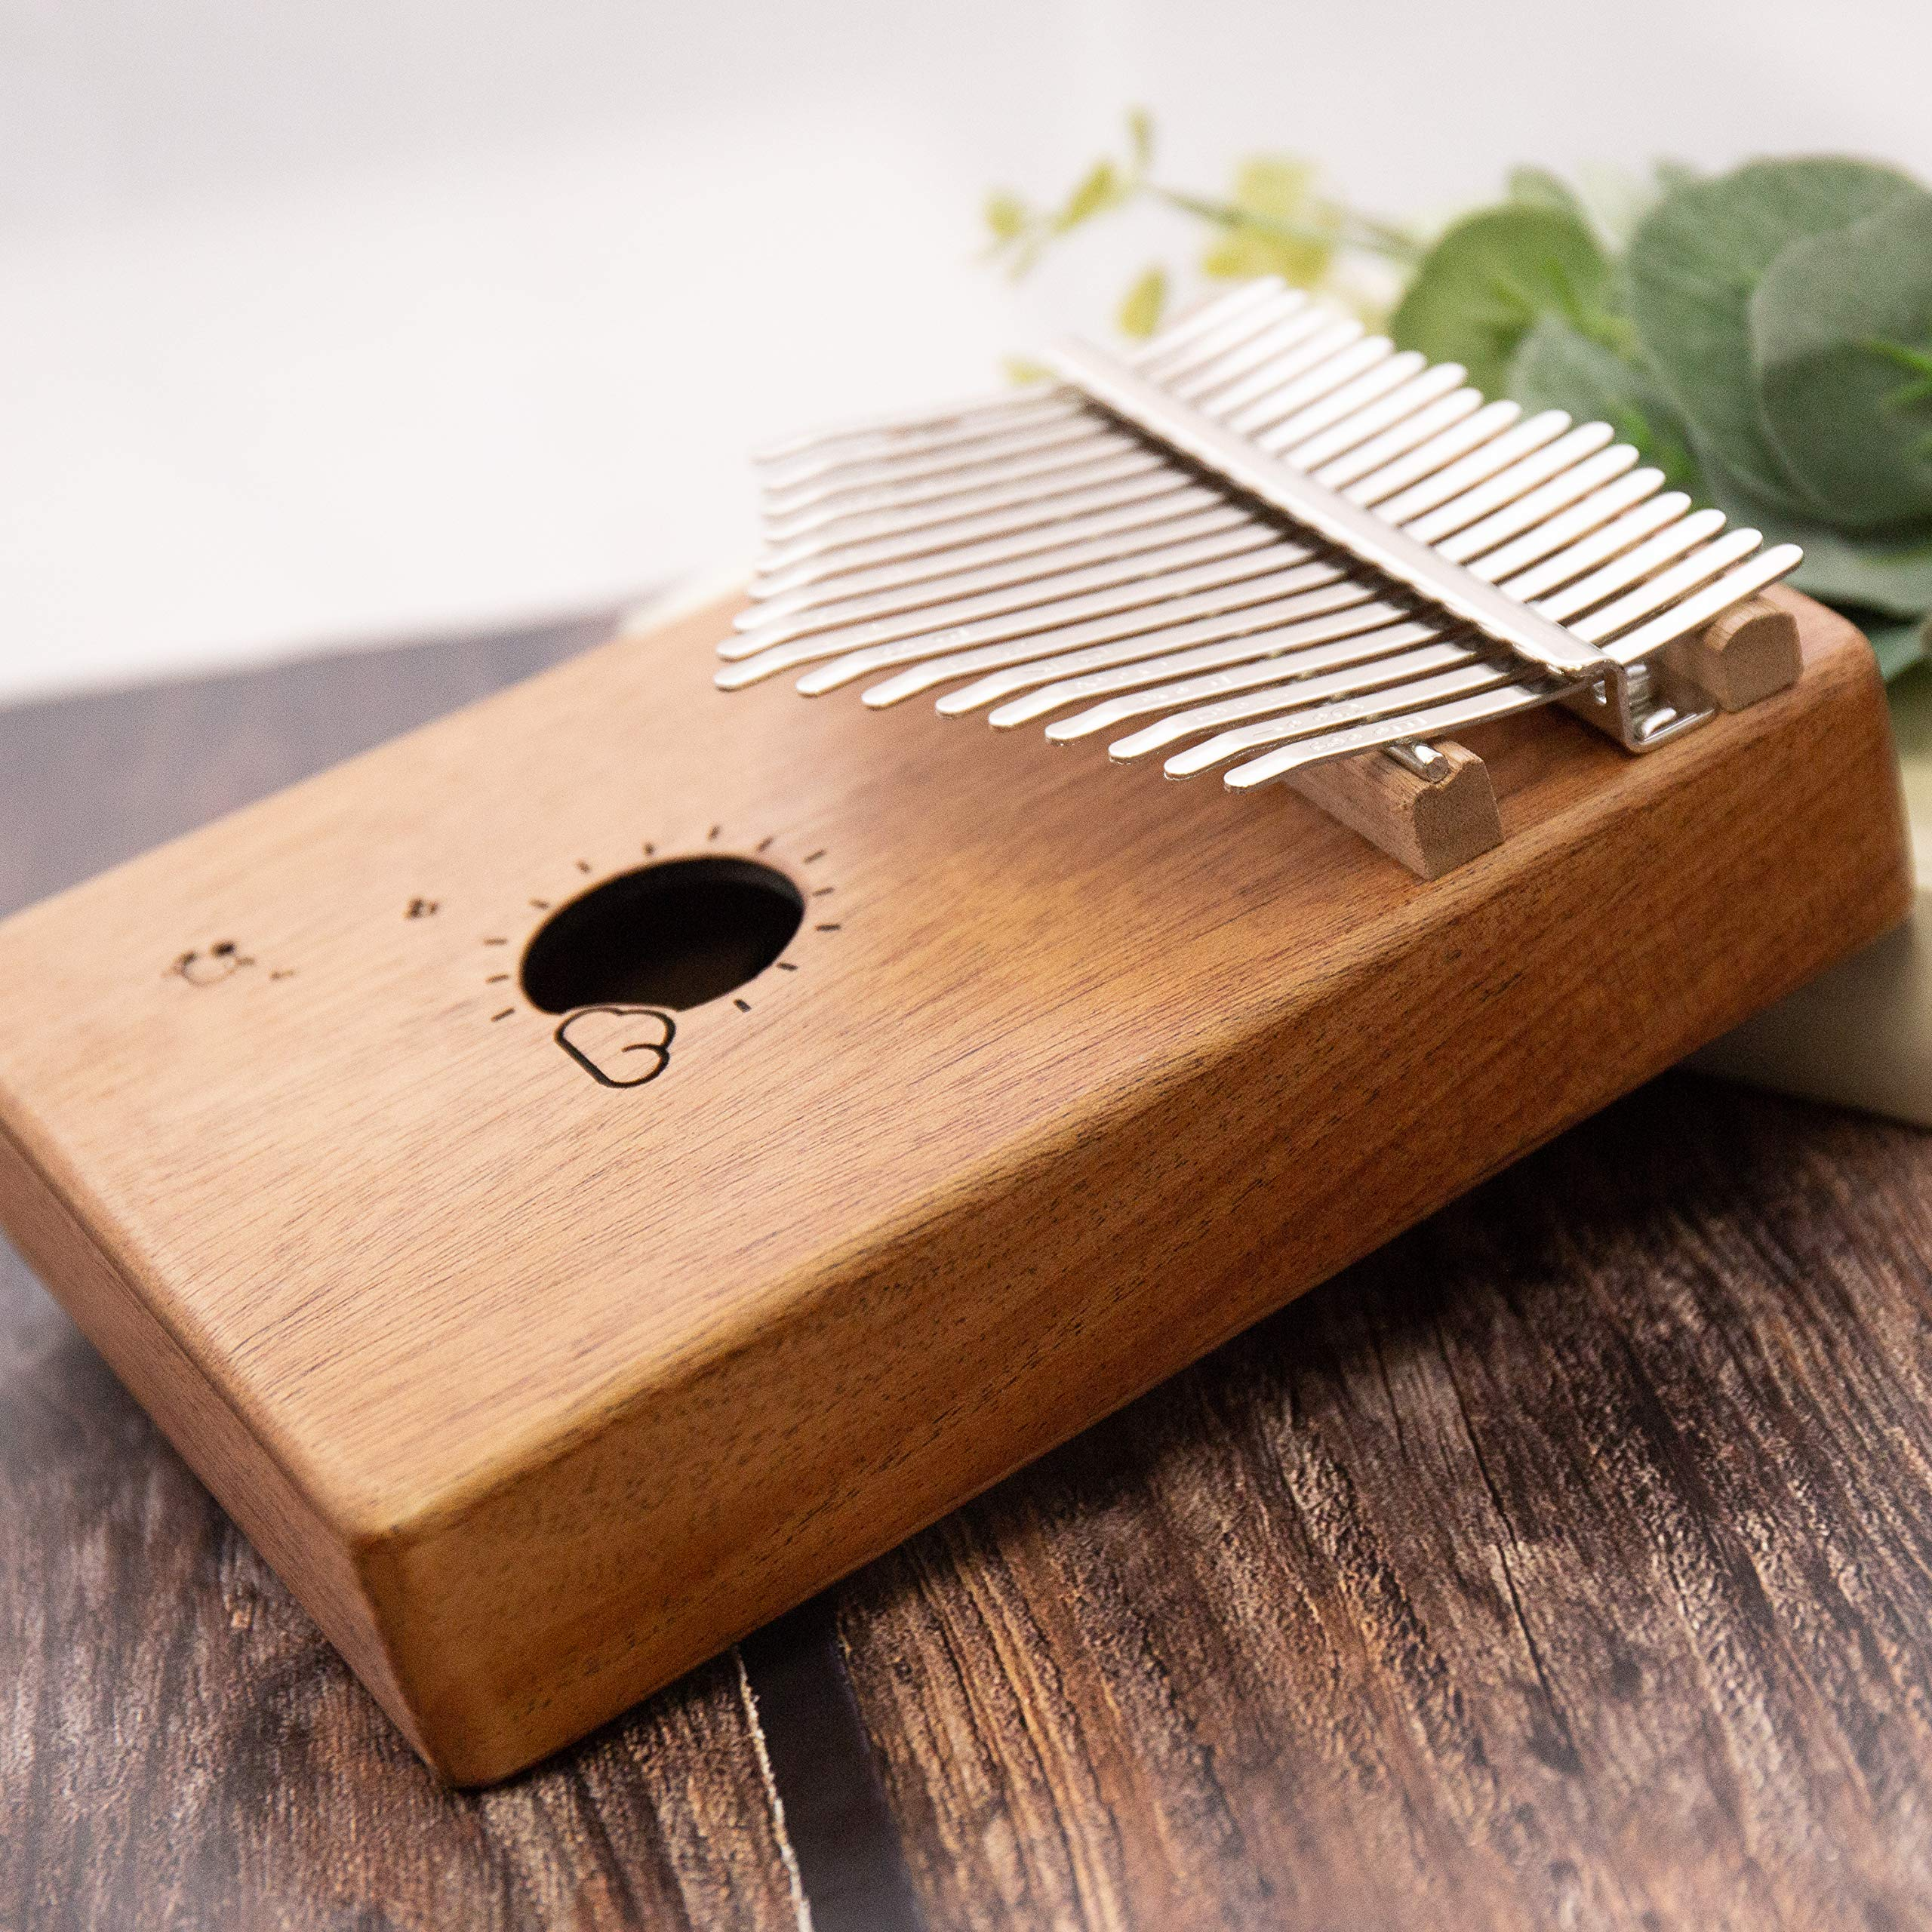 Kalimba 17 Keys Thumb Finger Piano - Mbira - Solid Mahogany and Portable with Carrying Bag and Instructions by GSM Brands (Image #5)